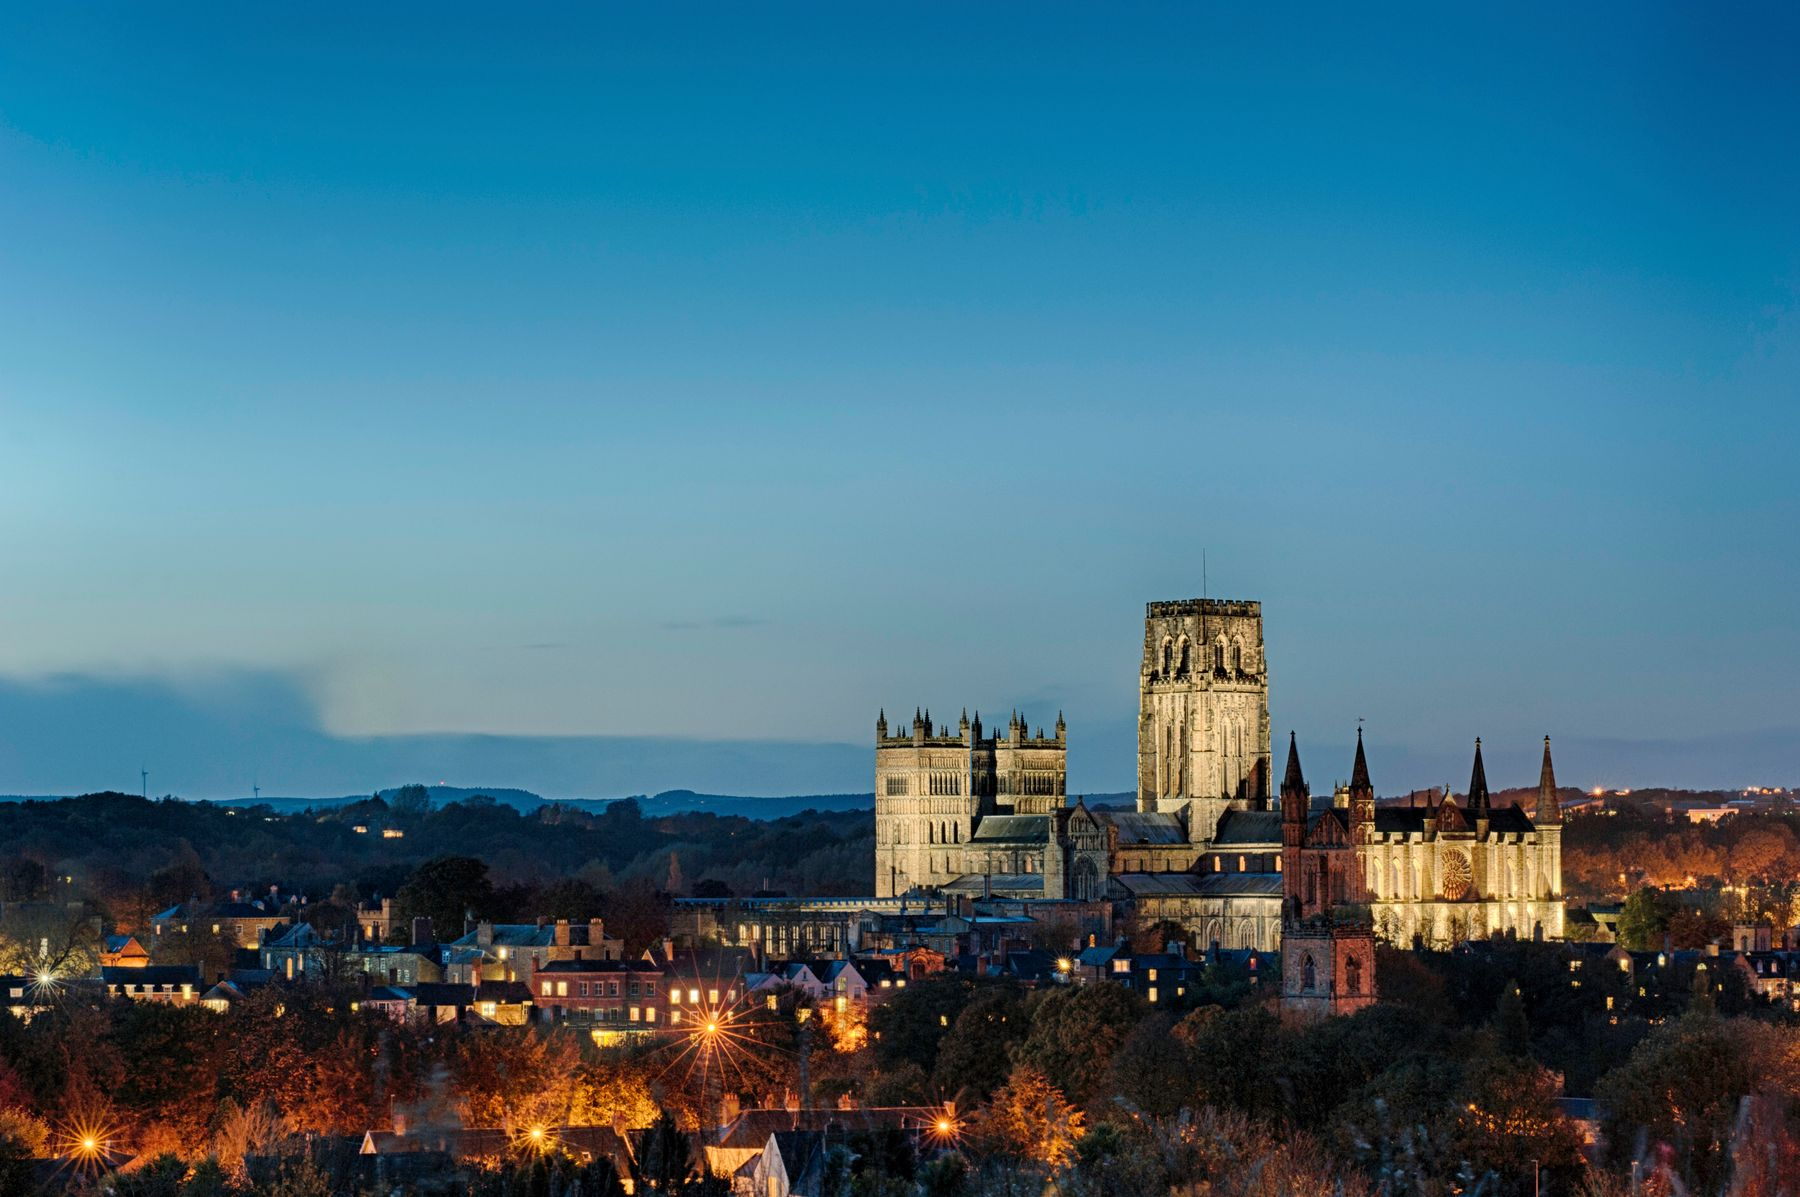 Picture shows the city of Durham at night time, with its cathedral rising above the city skyline.